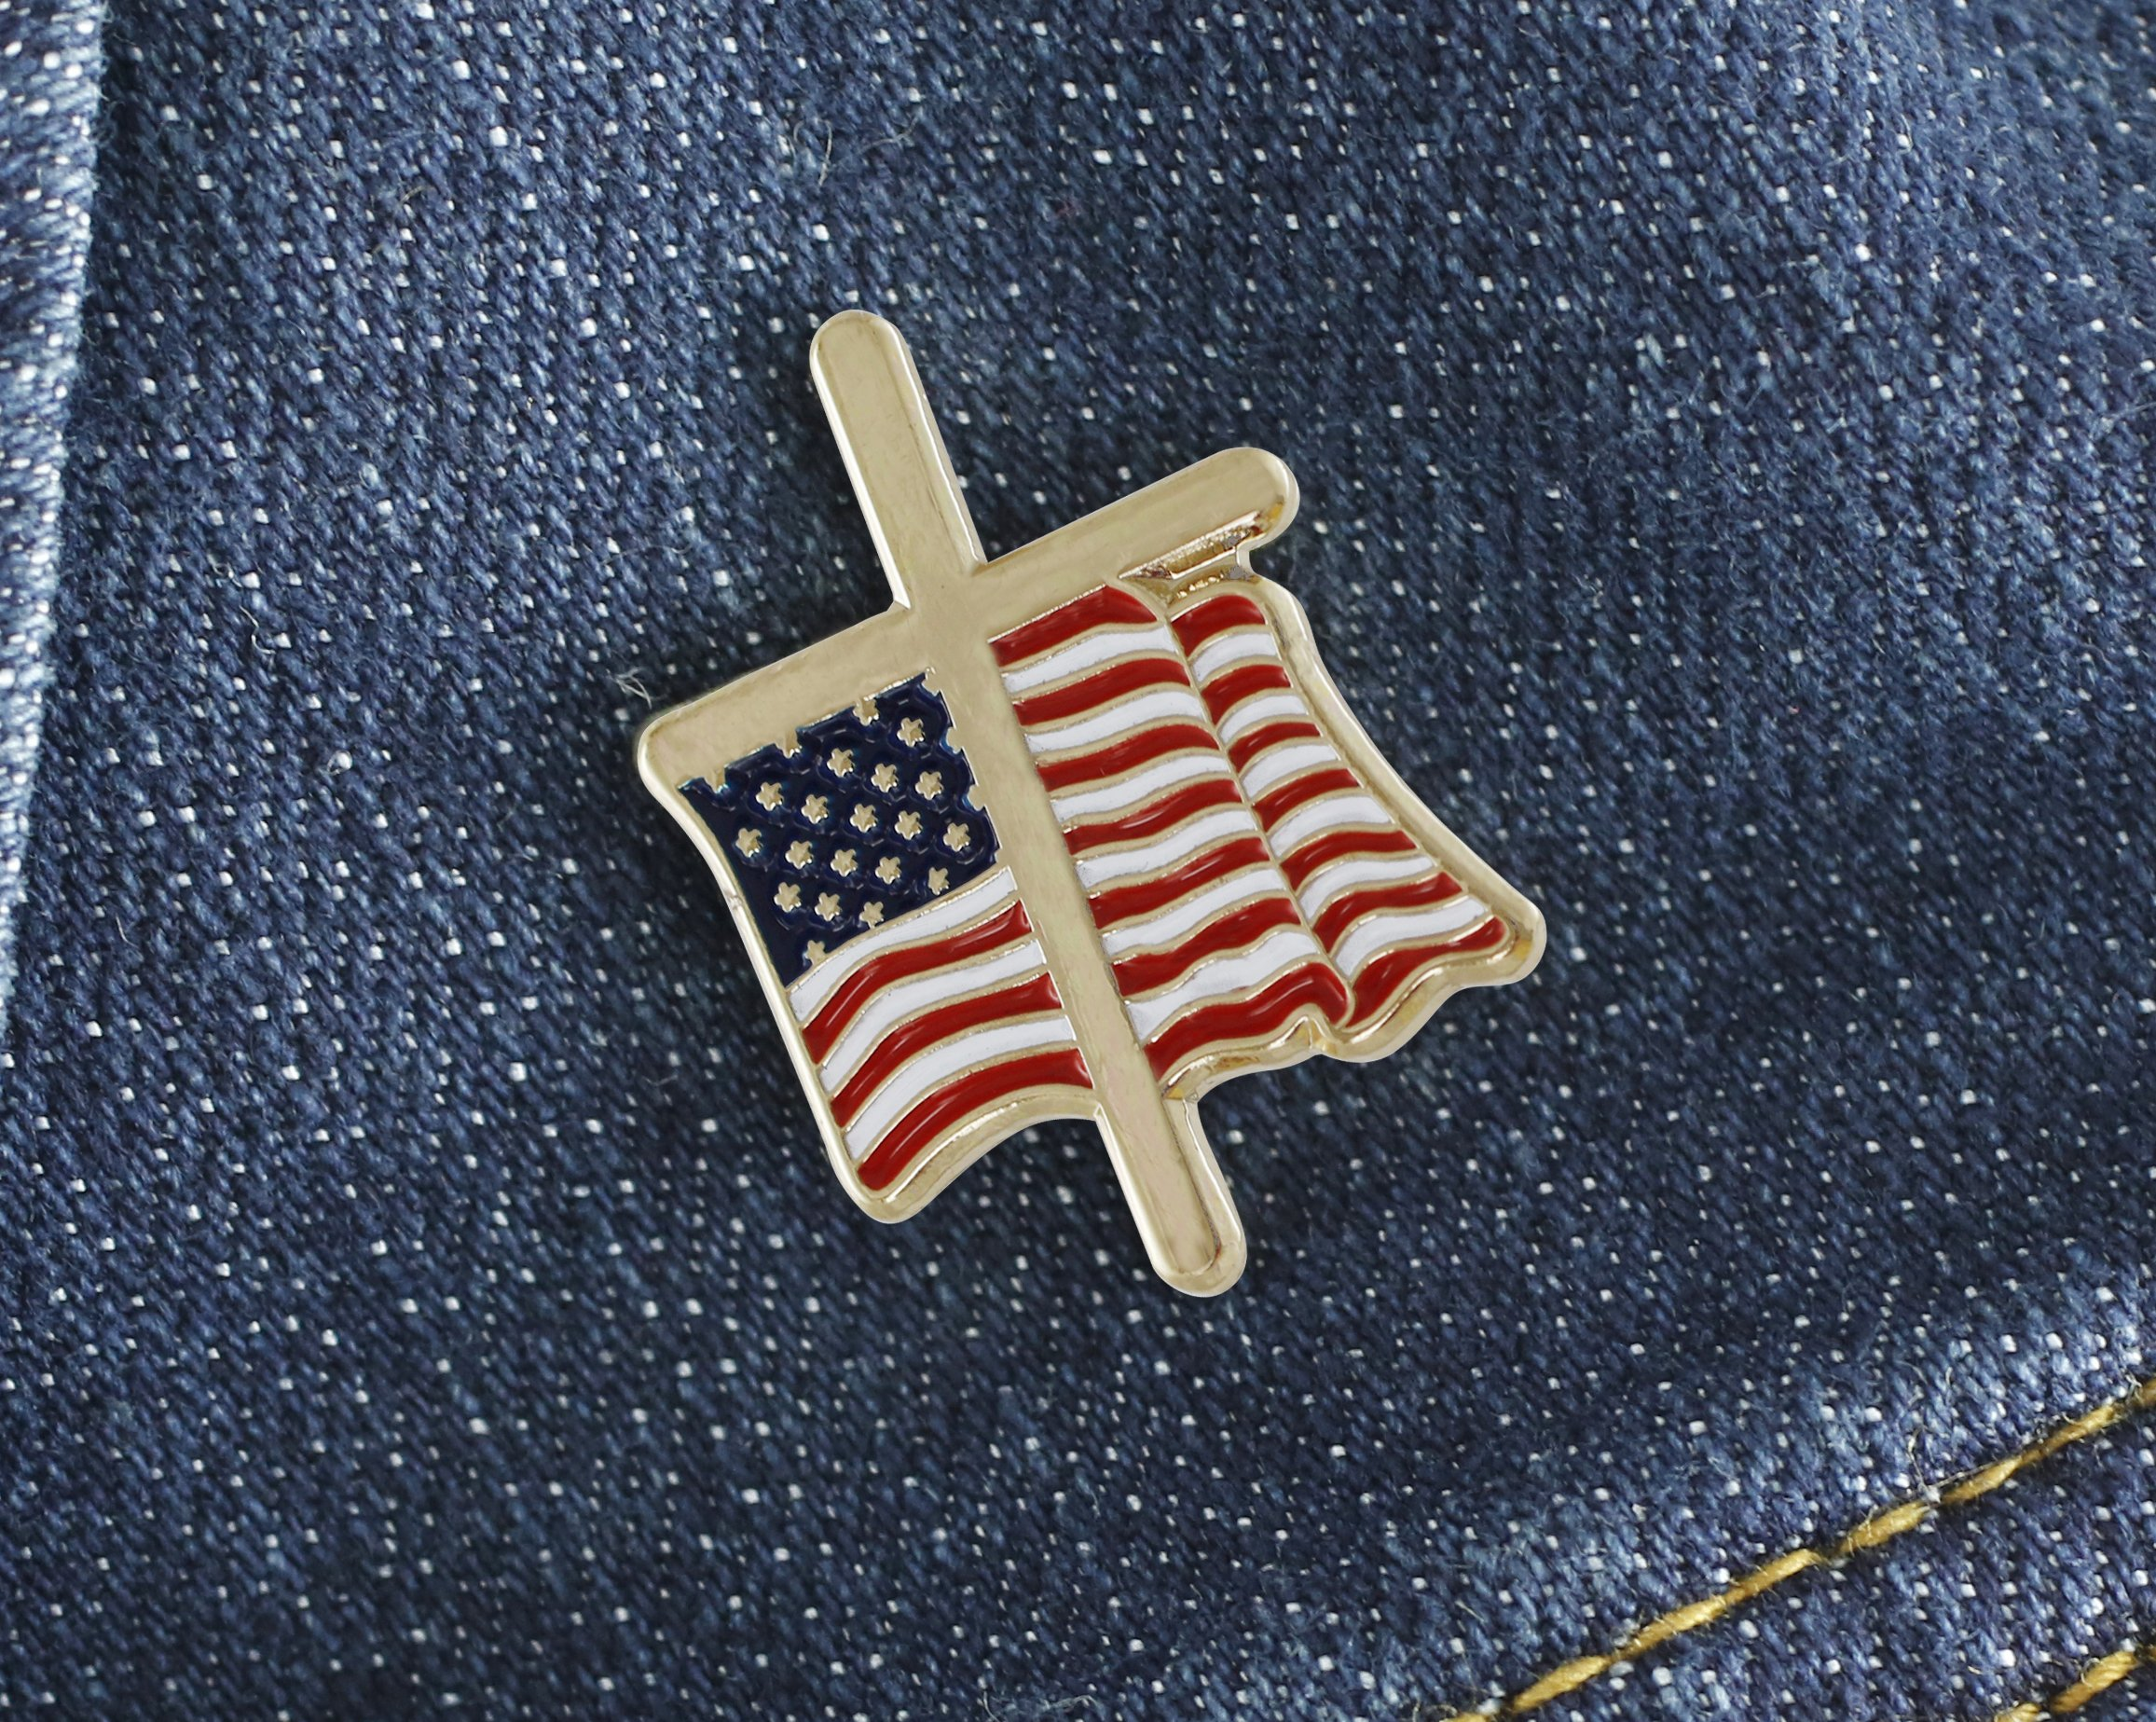 American Flag with Religious Cross Lapel Pin (50 Pins) by Forge (Image #5)